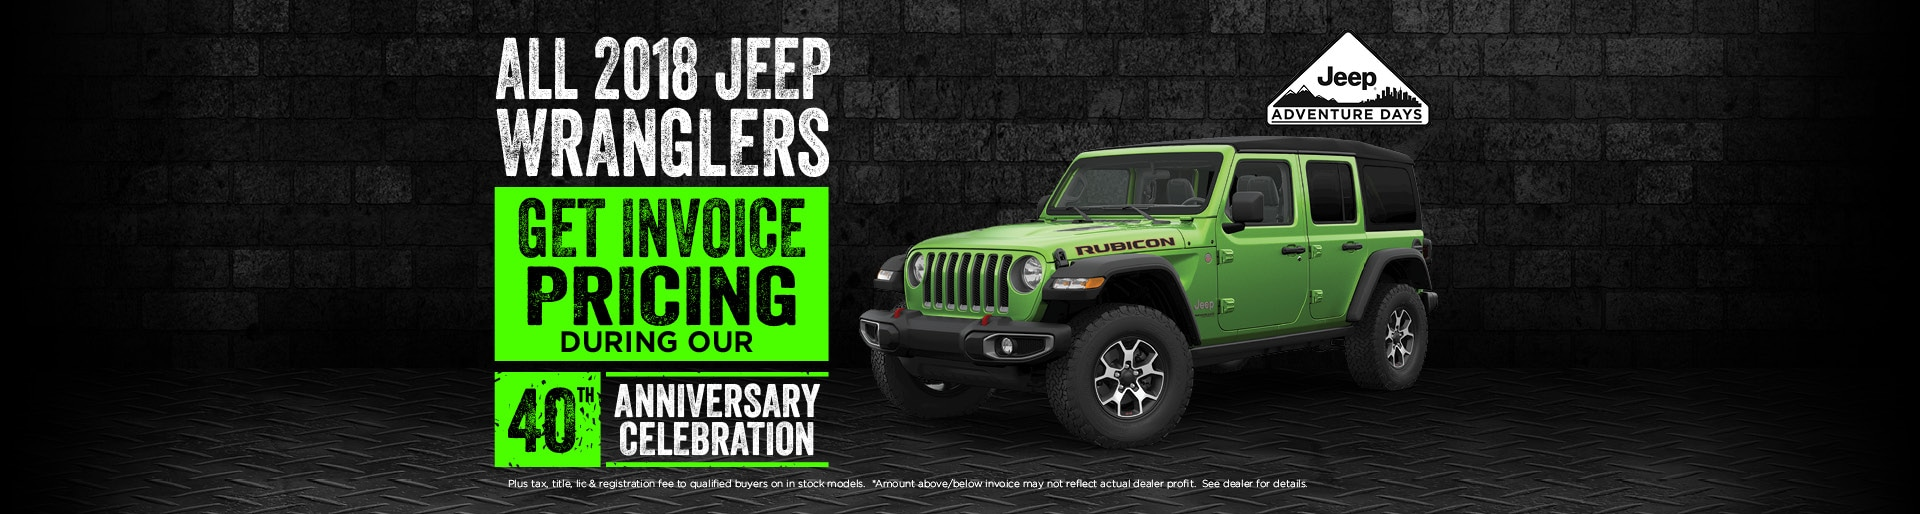 22% off Jeep Cherokees